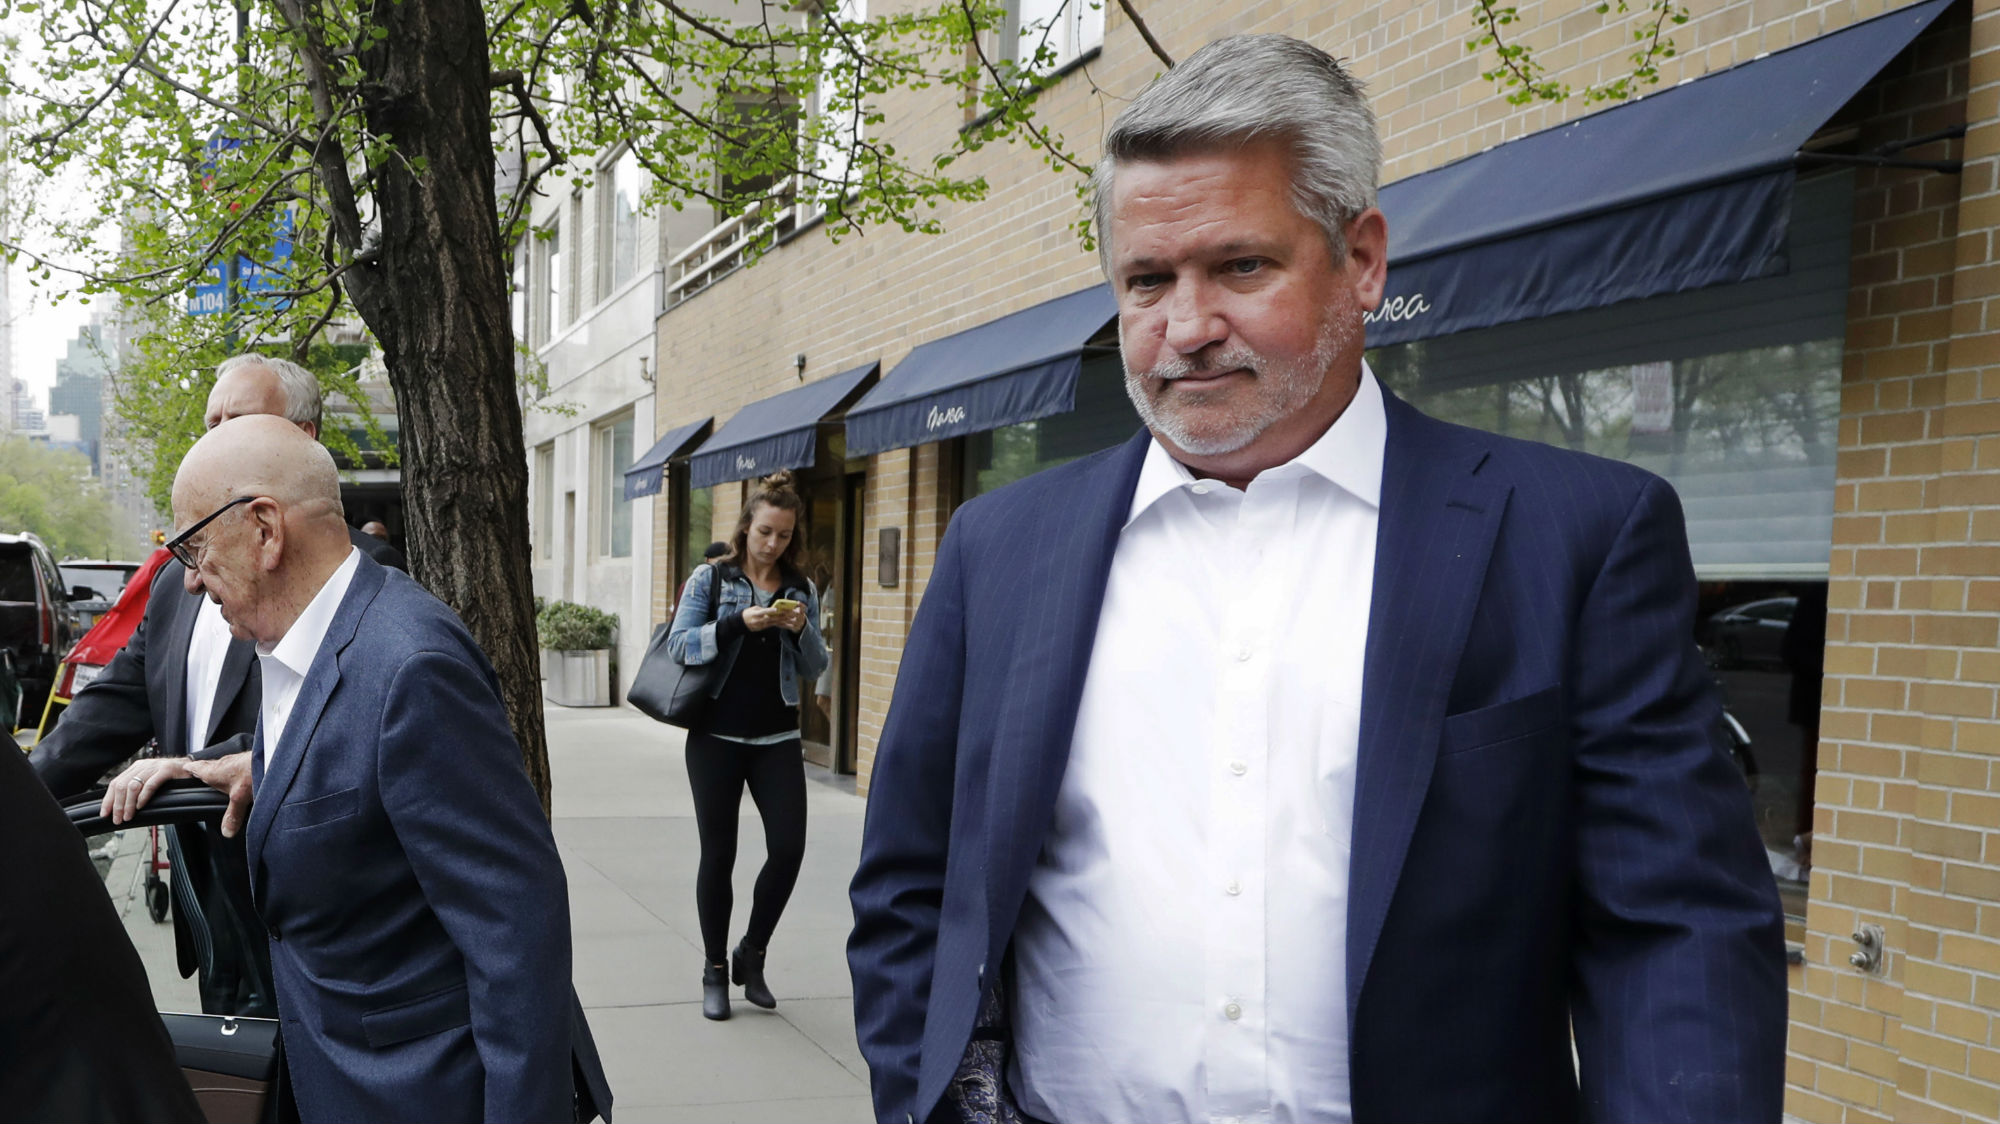 Bill Shine joins White House as communications director